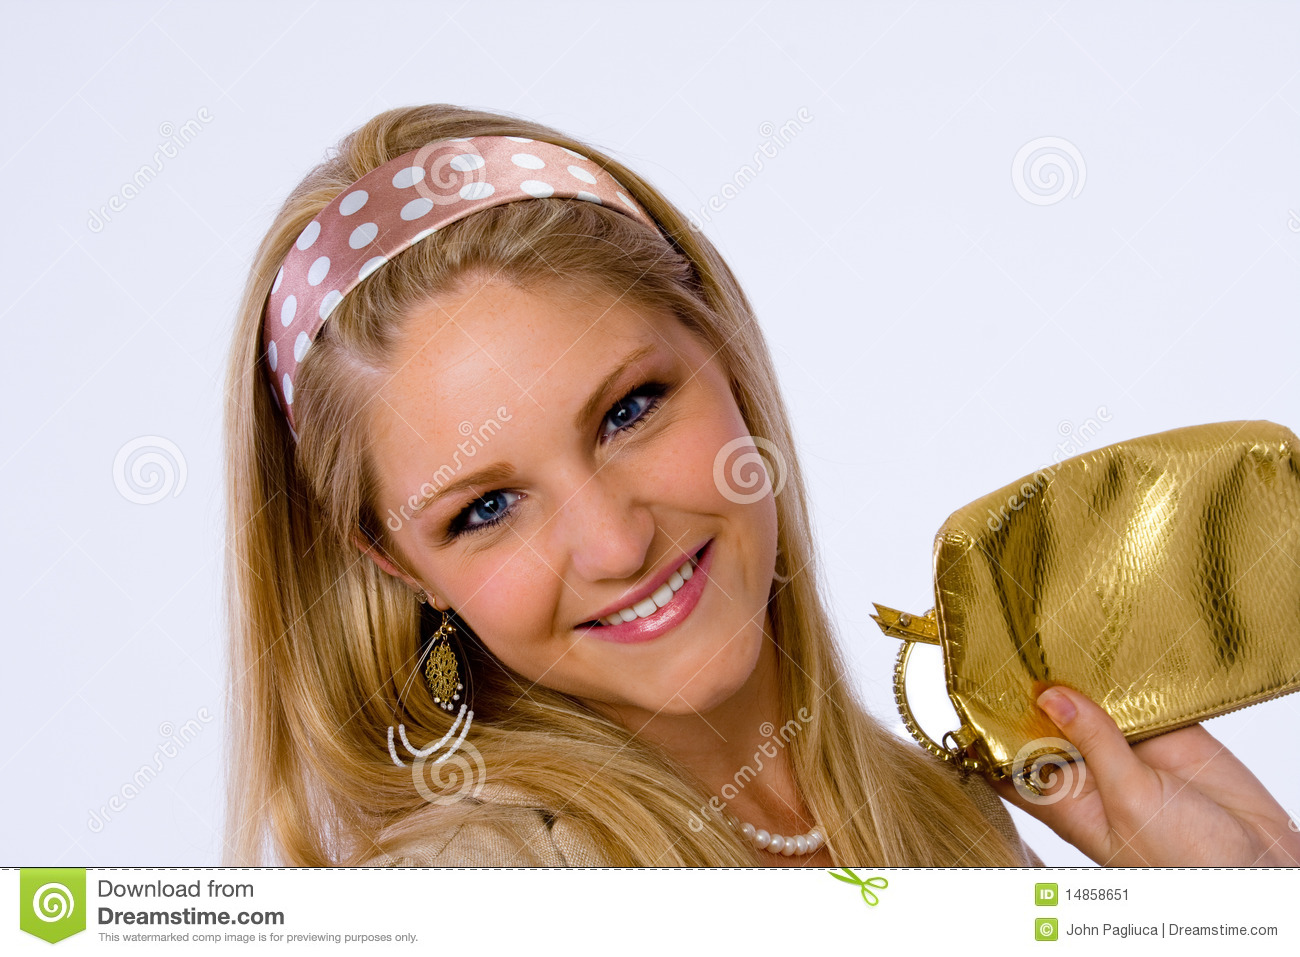 Fashionable young woman smiles at camera.